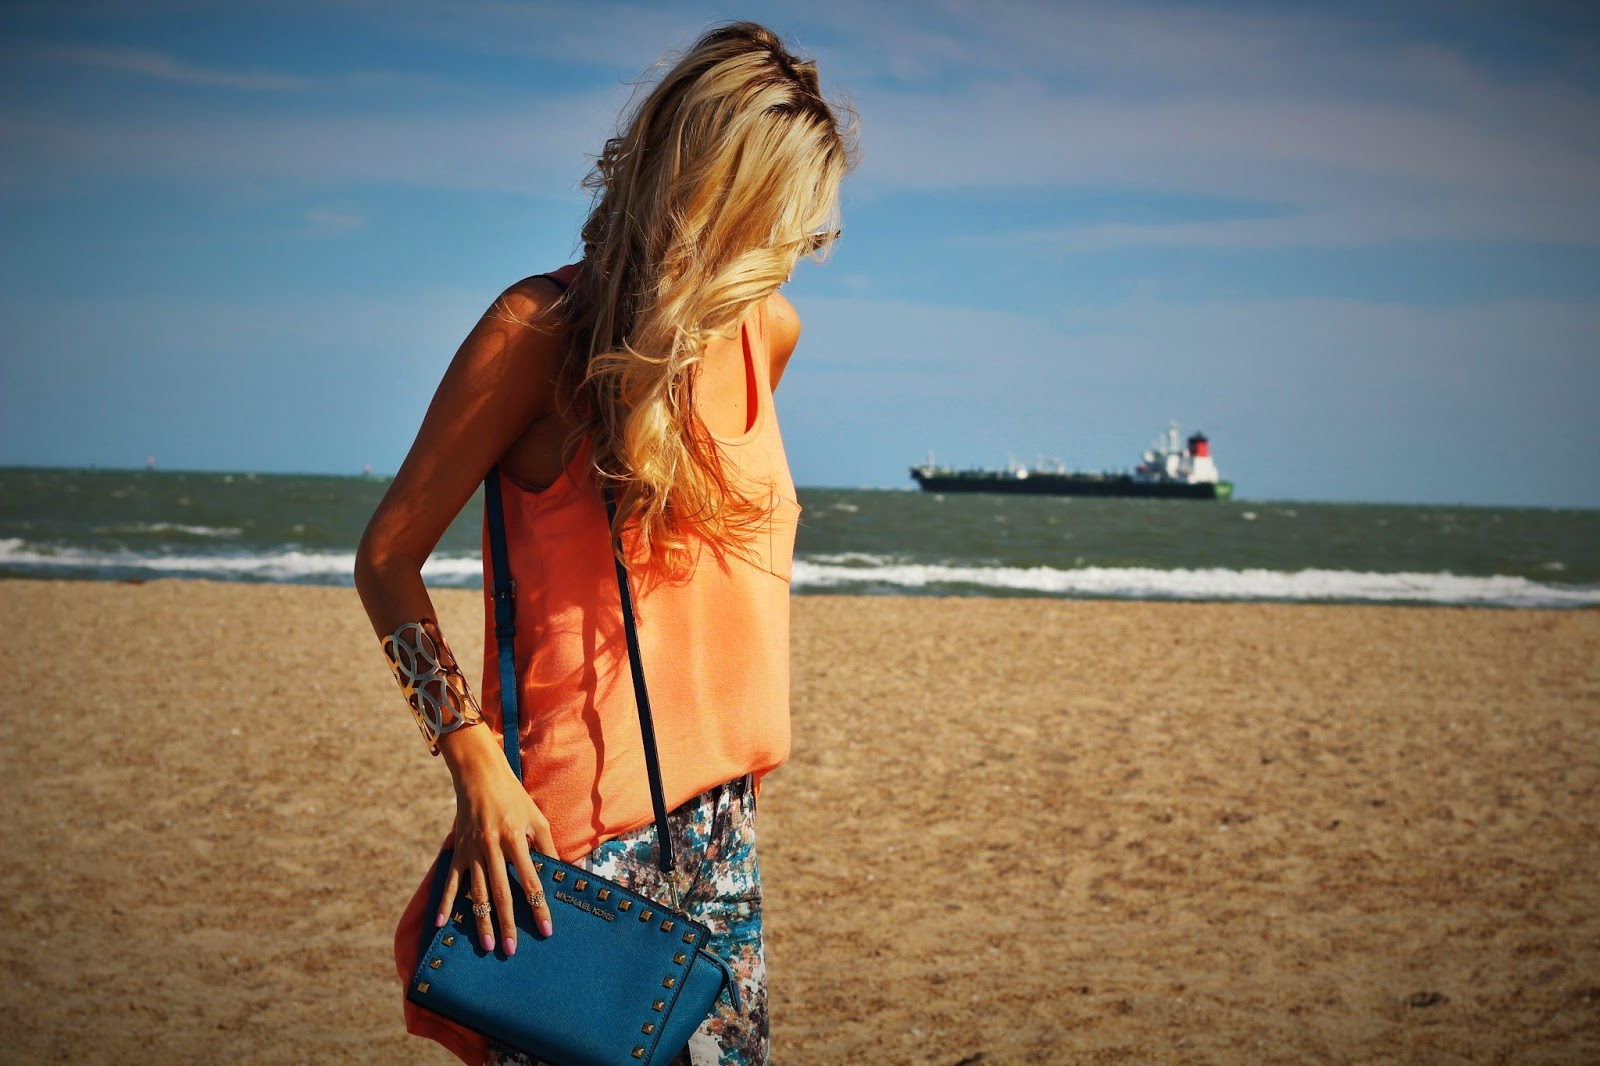 http://www.fabphilosophy.blogspot.com/2014/04/outfit-of-day-brights-on-beach.html